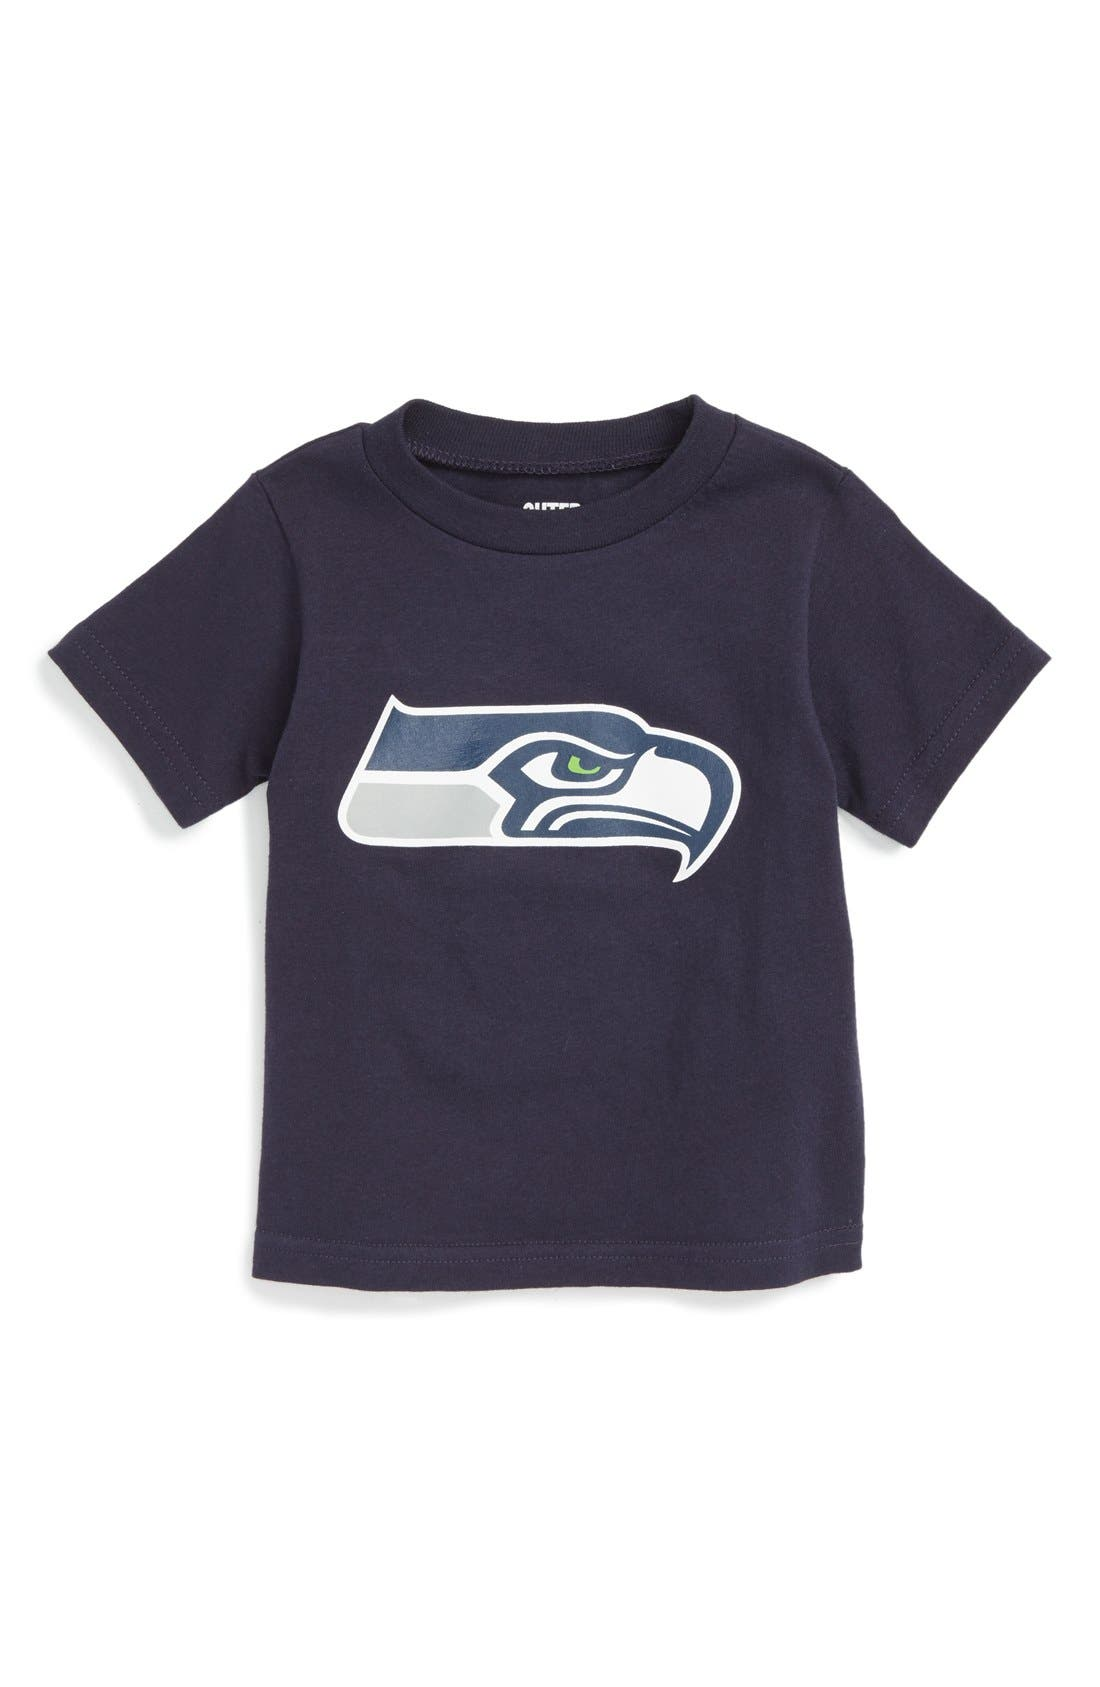 Alternate Image 1 Selected - Outerstuff NFL Distressed Logo Graphic T-Shirt (Baby Boys)